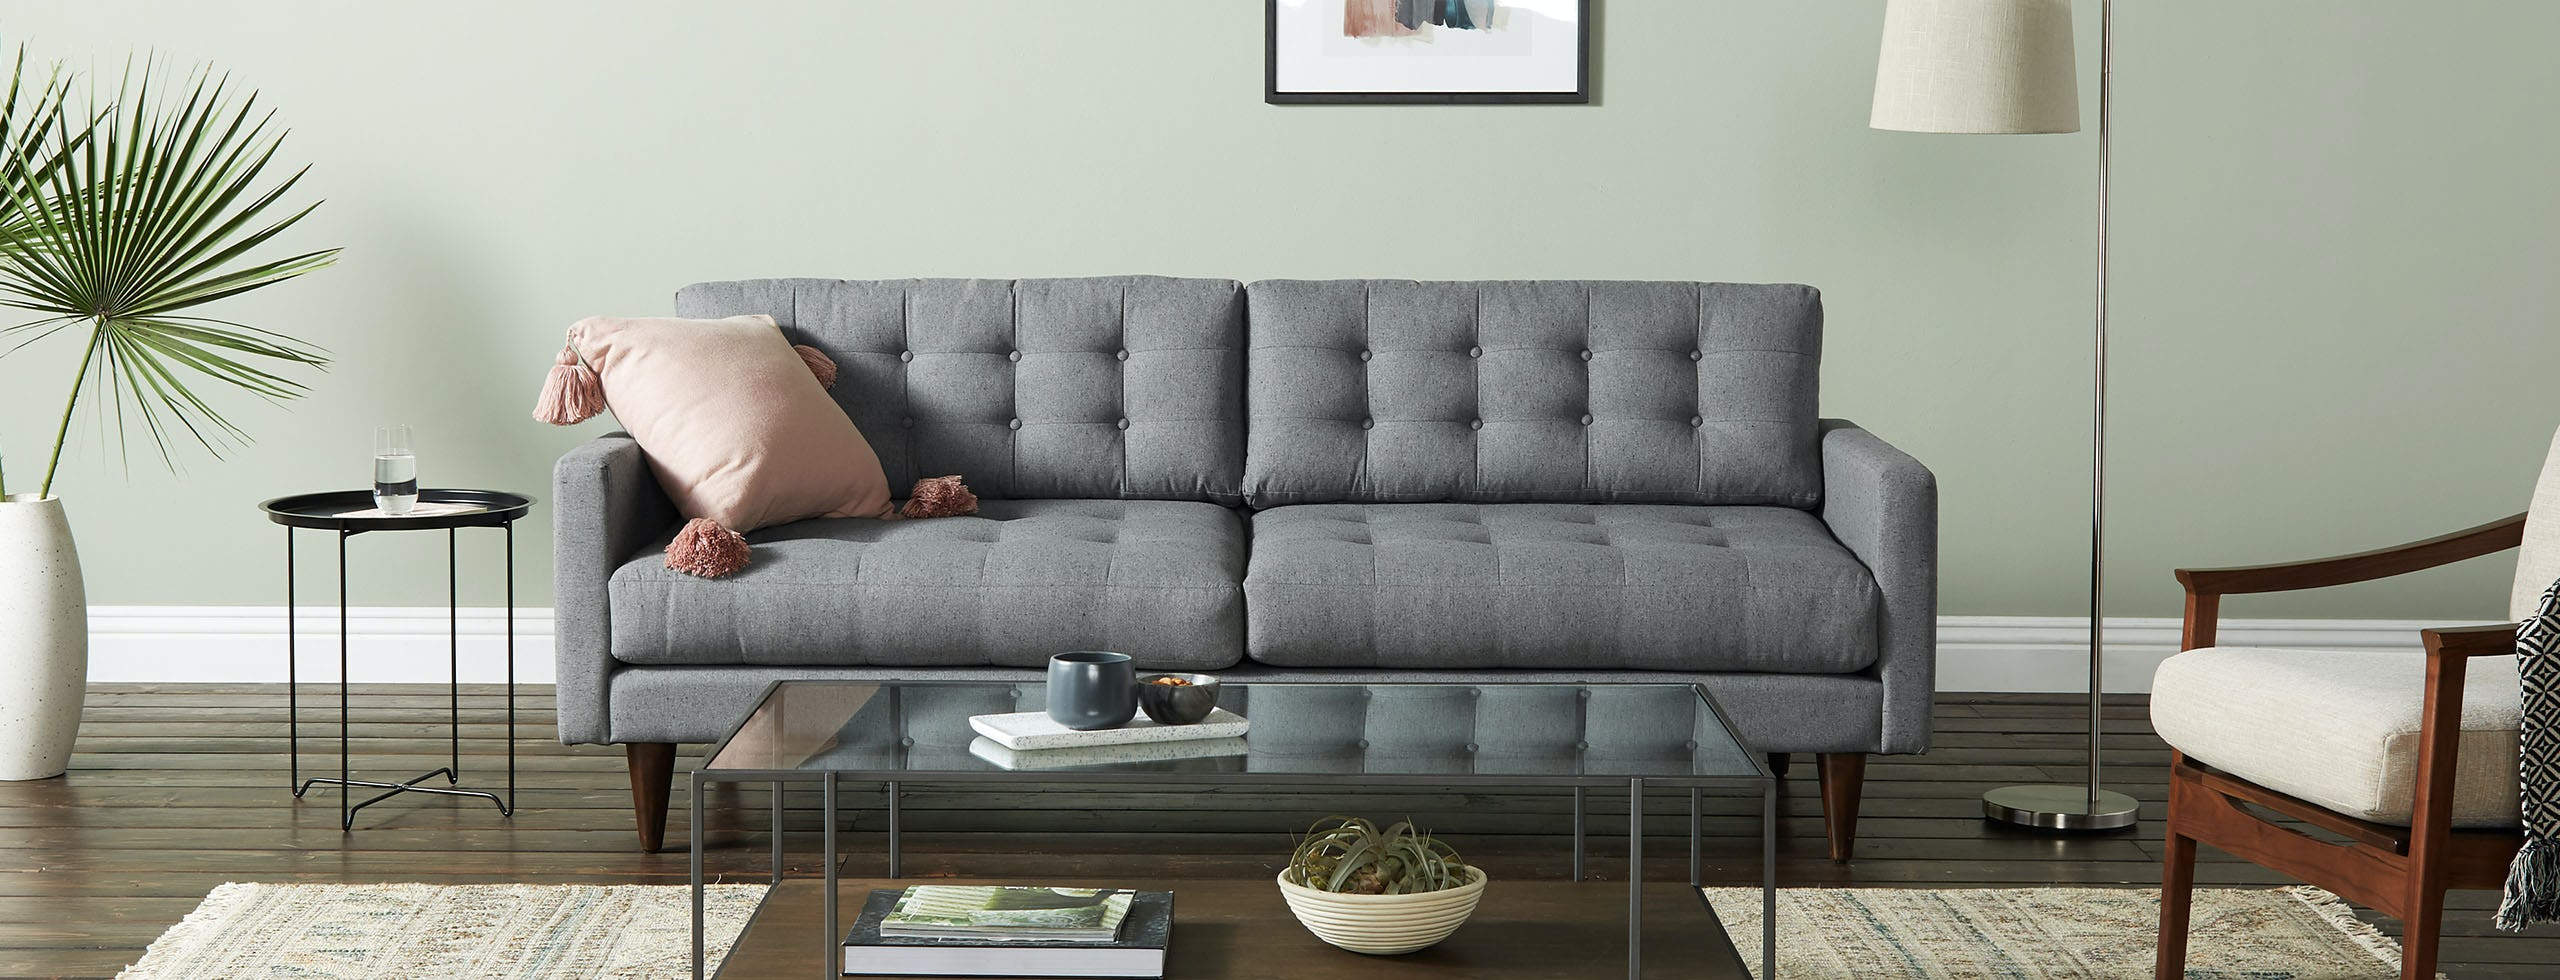 Eliot-Sofa-Taylor-Felt-Grey-T2-116